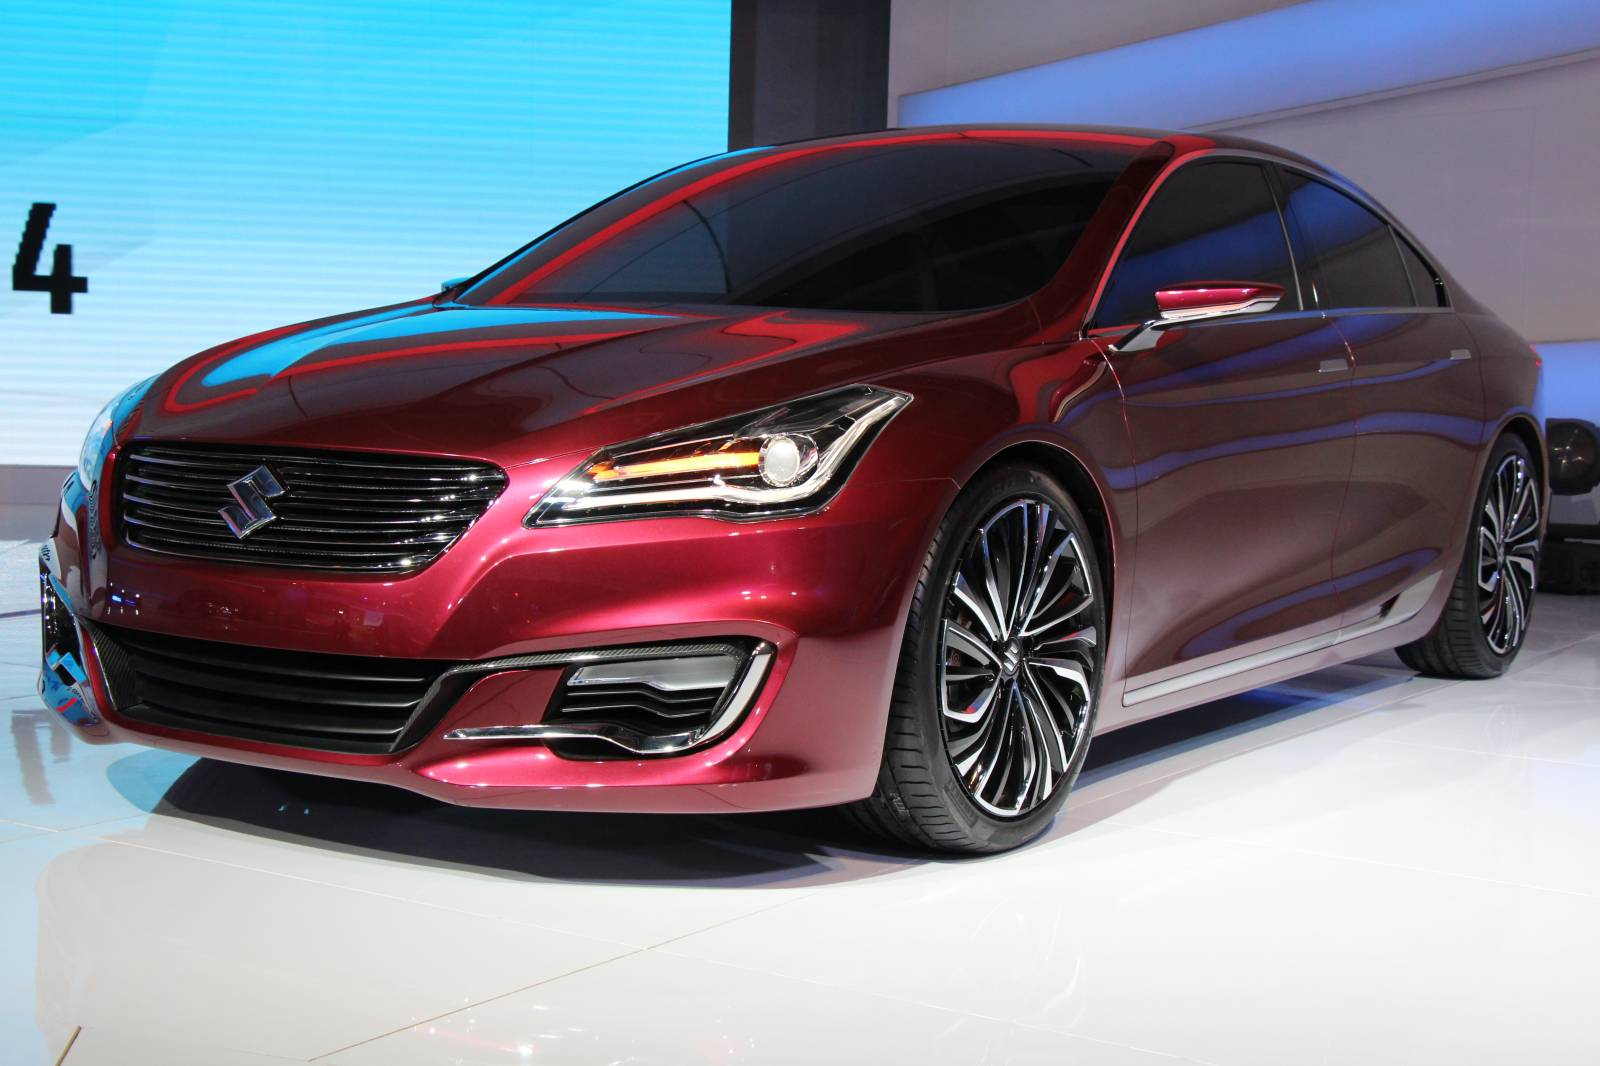 Maruti Suzuki Reveals New Ciaz Concept Sedan in India ...